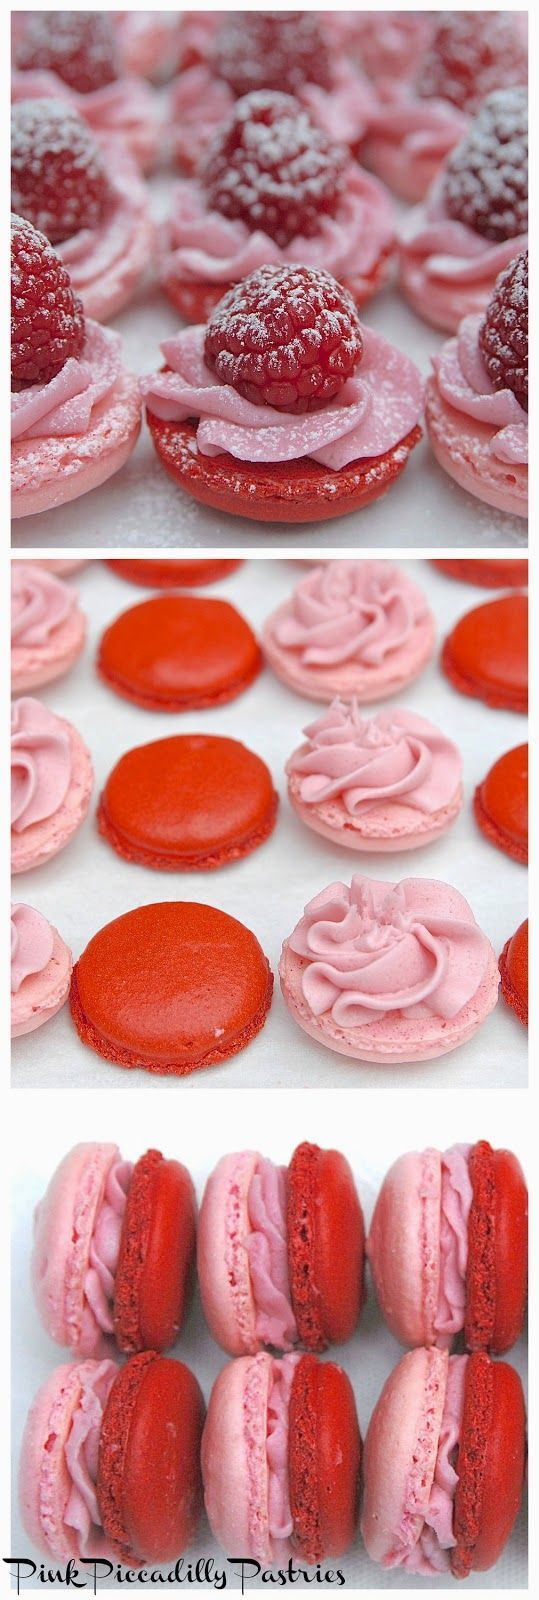 Pink Piccadilly Pastries: Raspberry Macaron Petits Fours